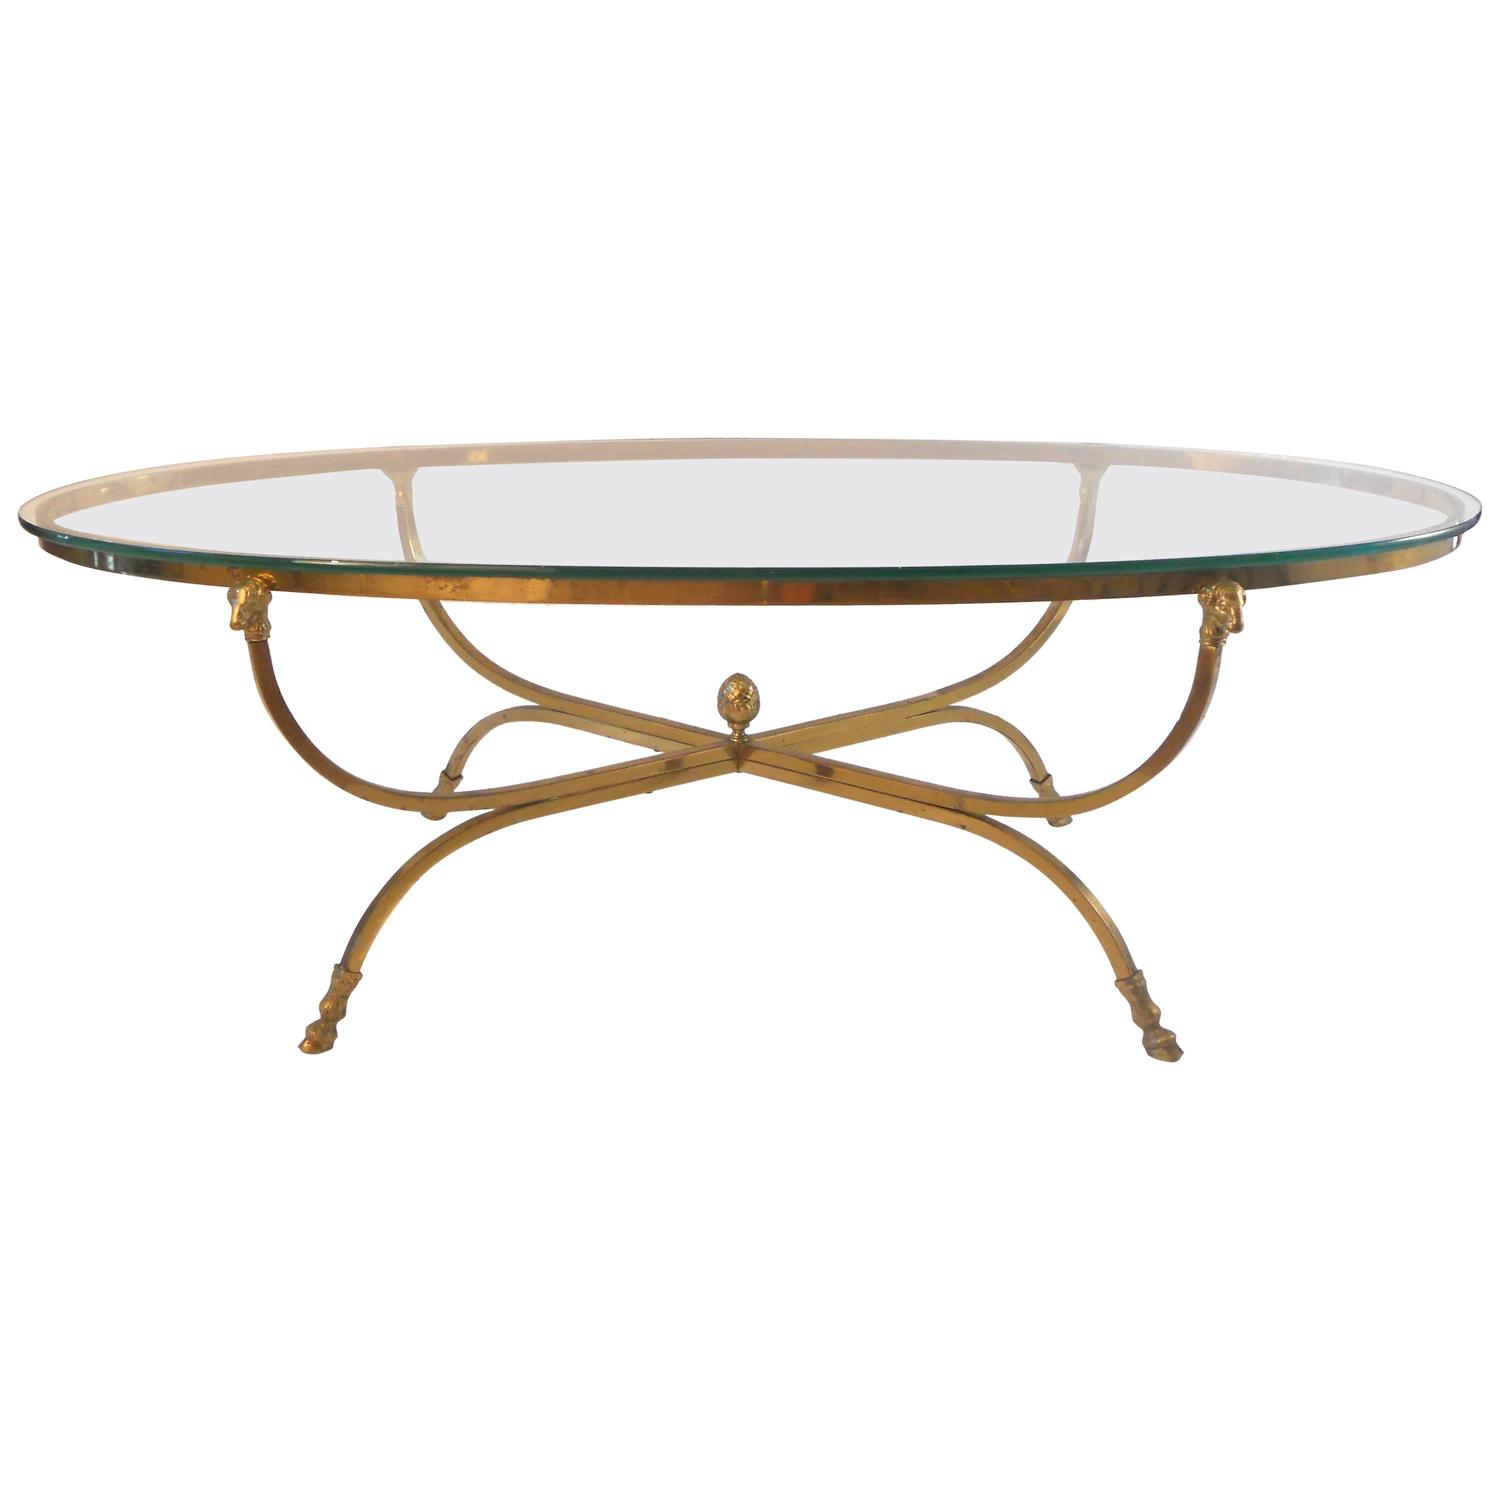 Maison Jansen Oval Cocktail Table With Ram's-Head Detail